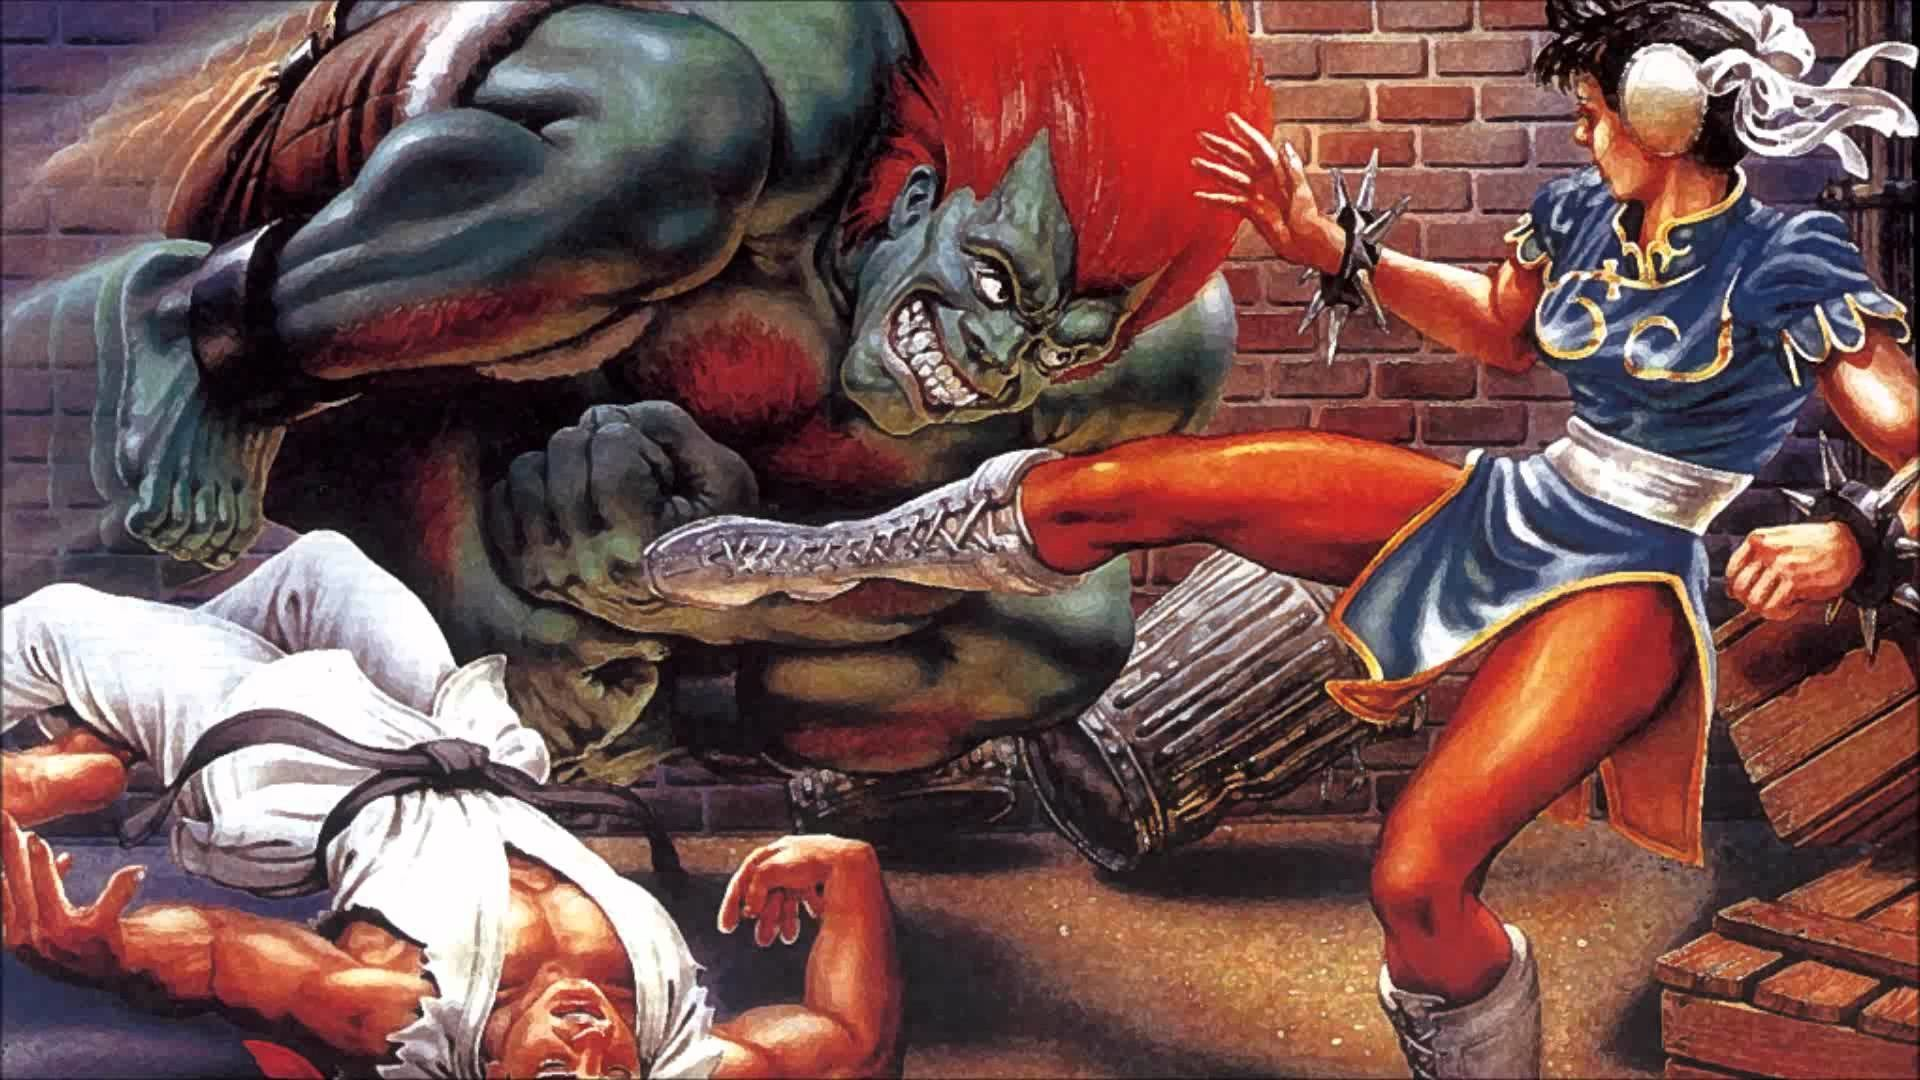 Street Fighter 2 Wallpaper 72 Images